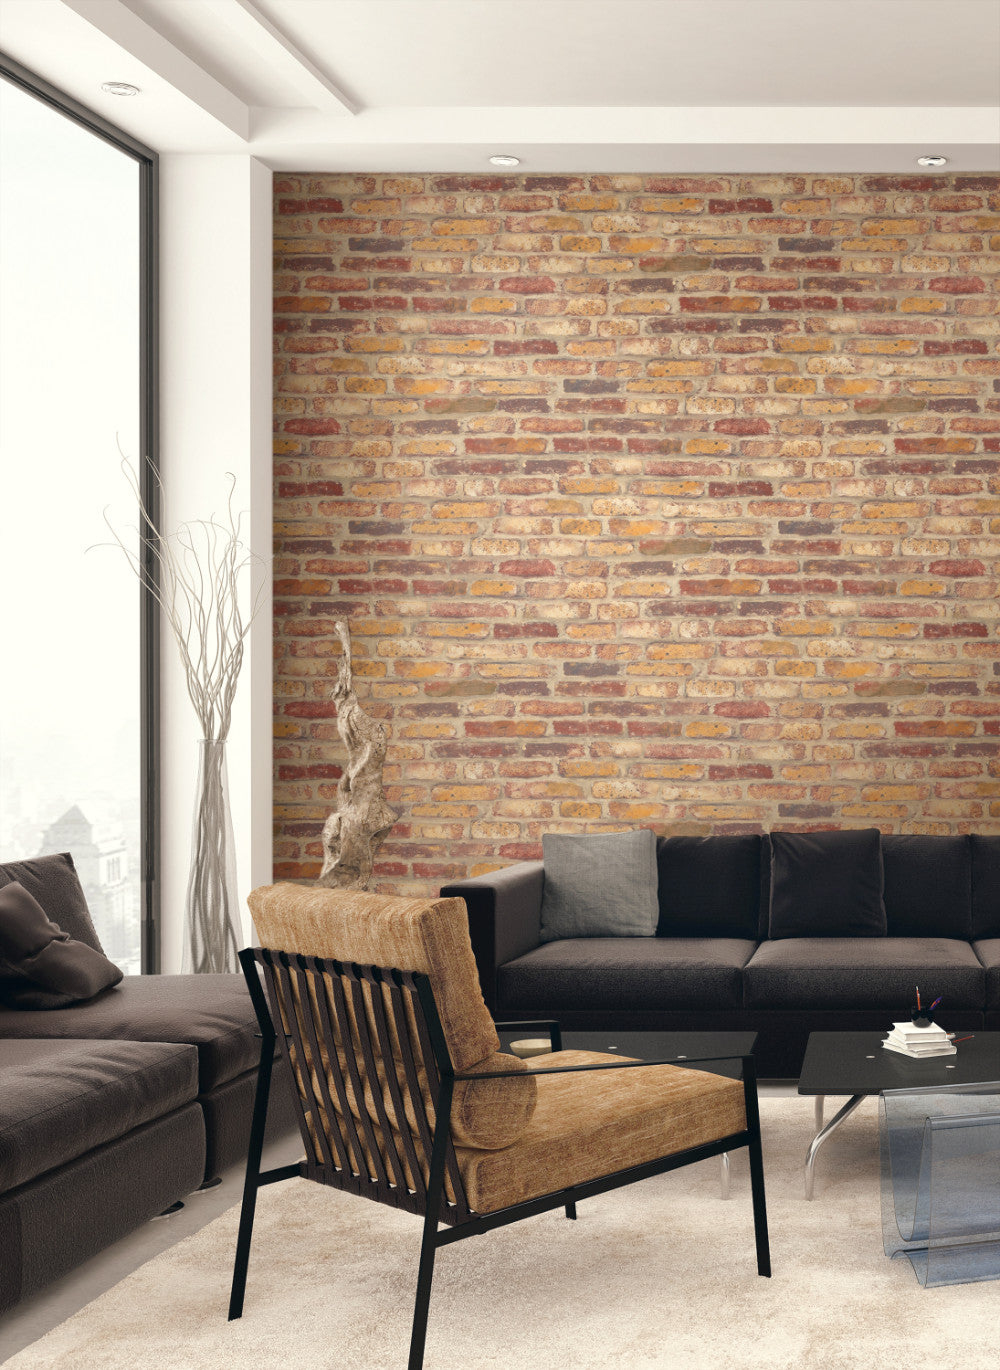 Rustic Faux Brick Peel And Stick Wallpaper In Red By